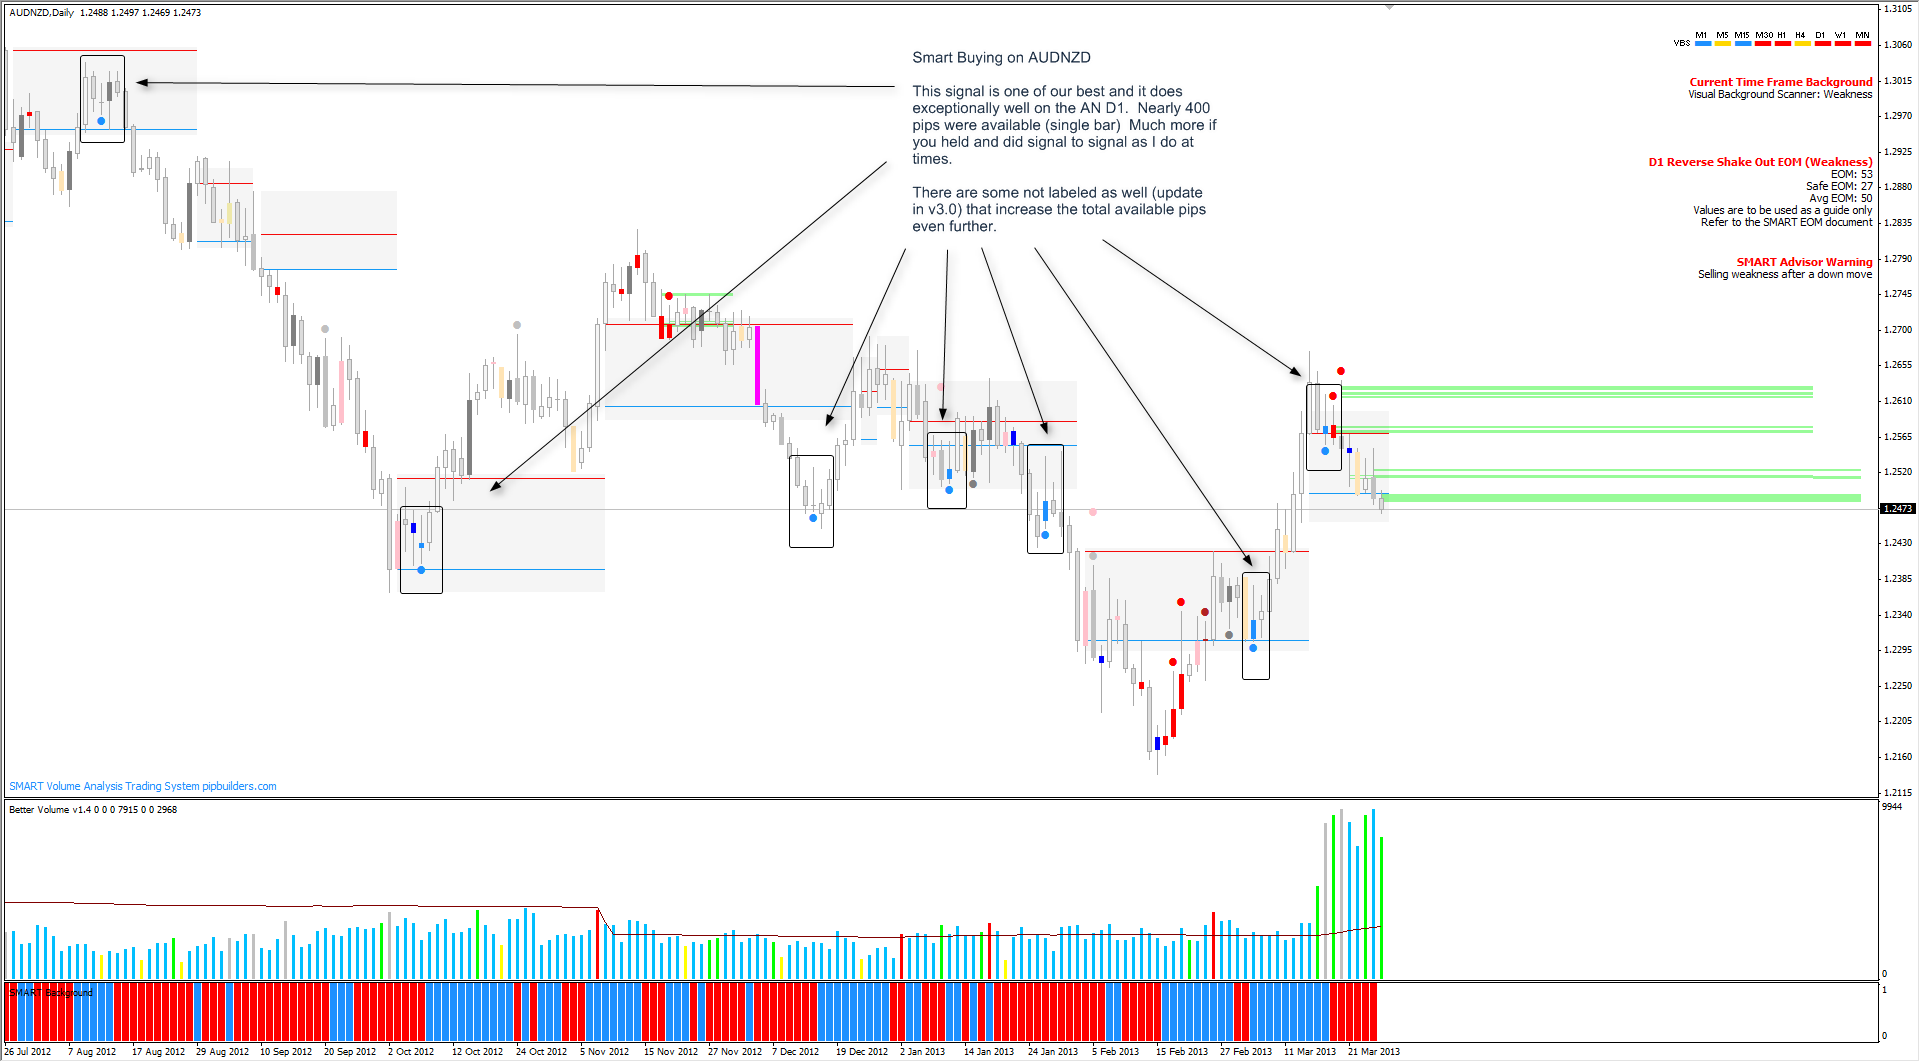 Smart Buying AUDNZD Daily - 400 pips